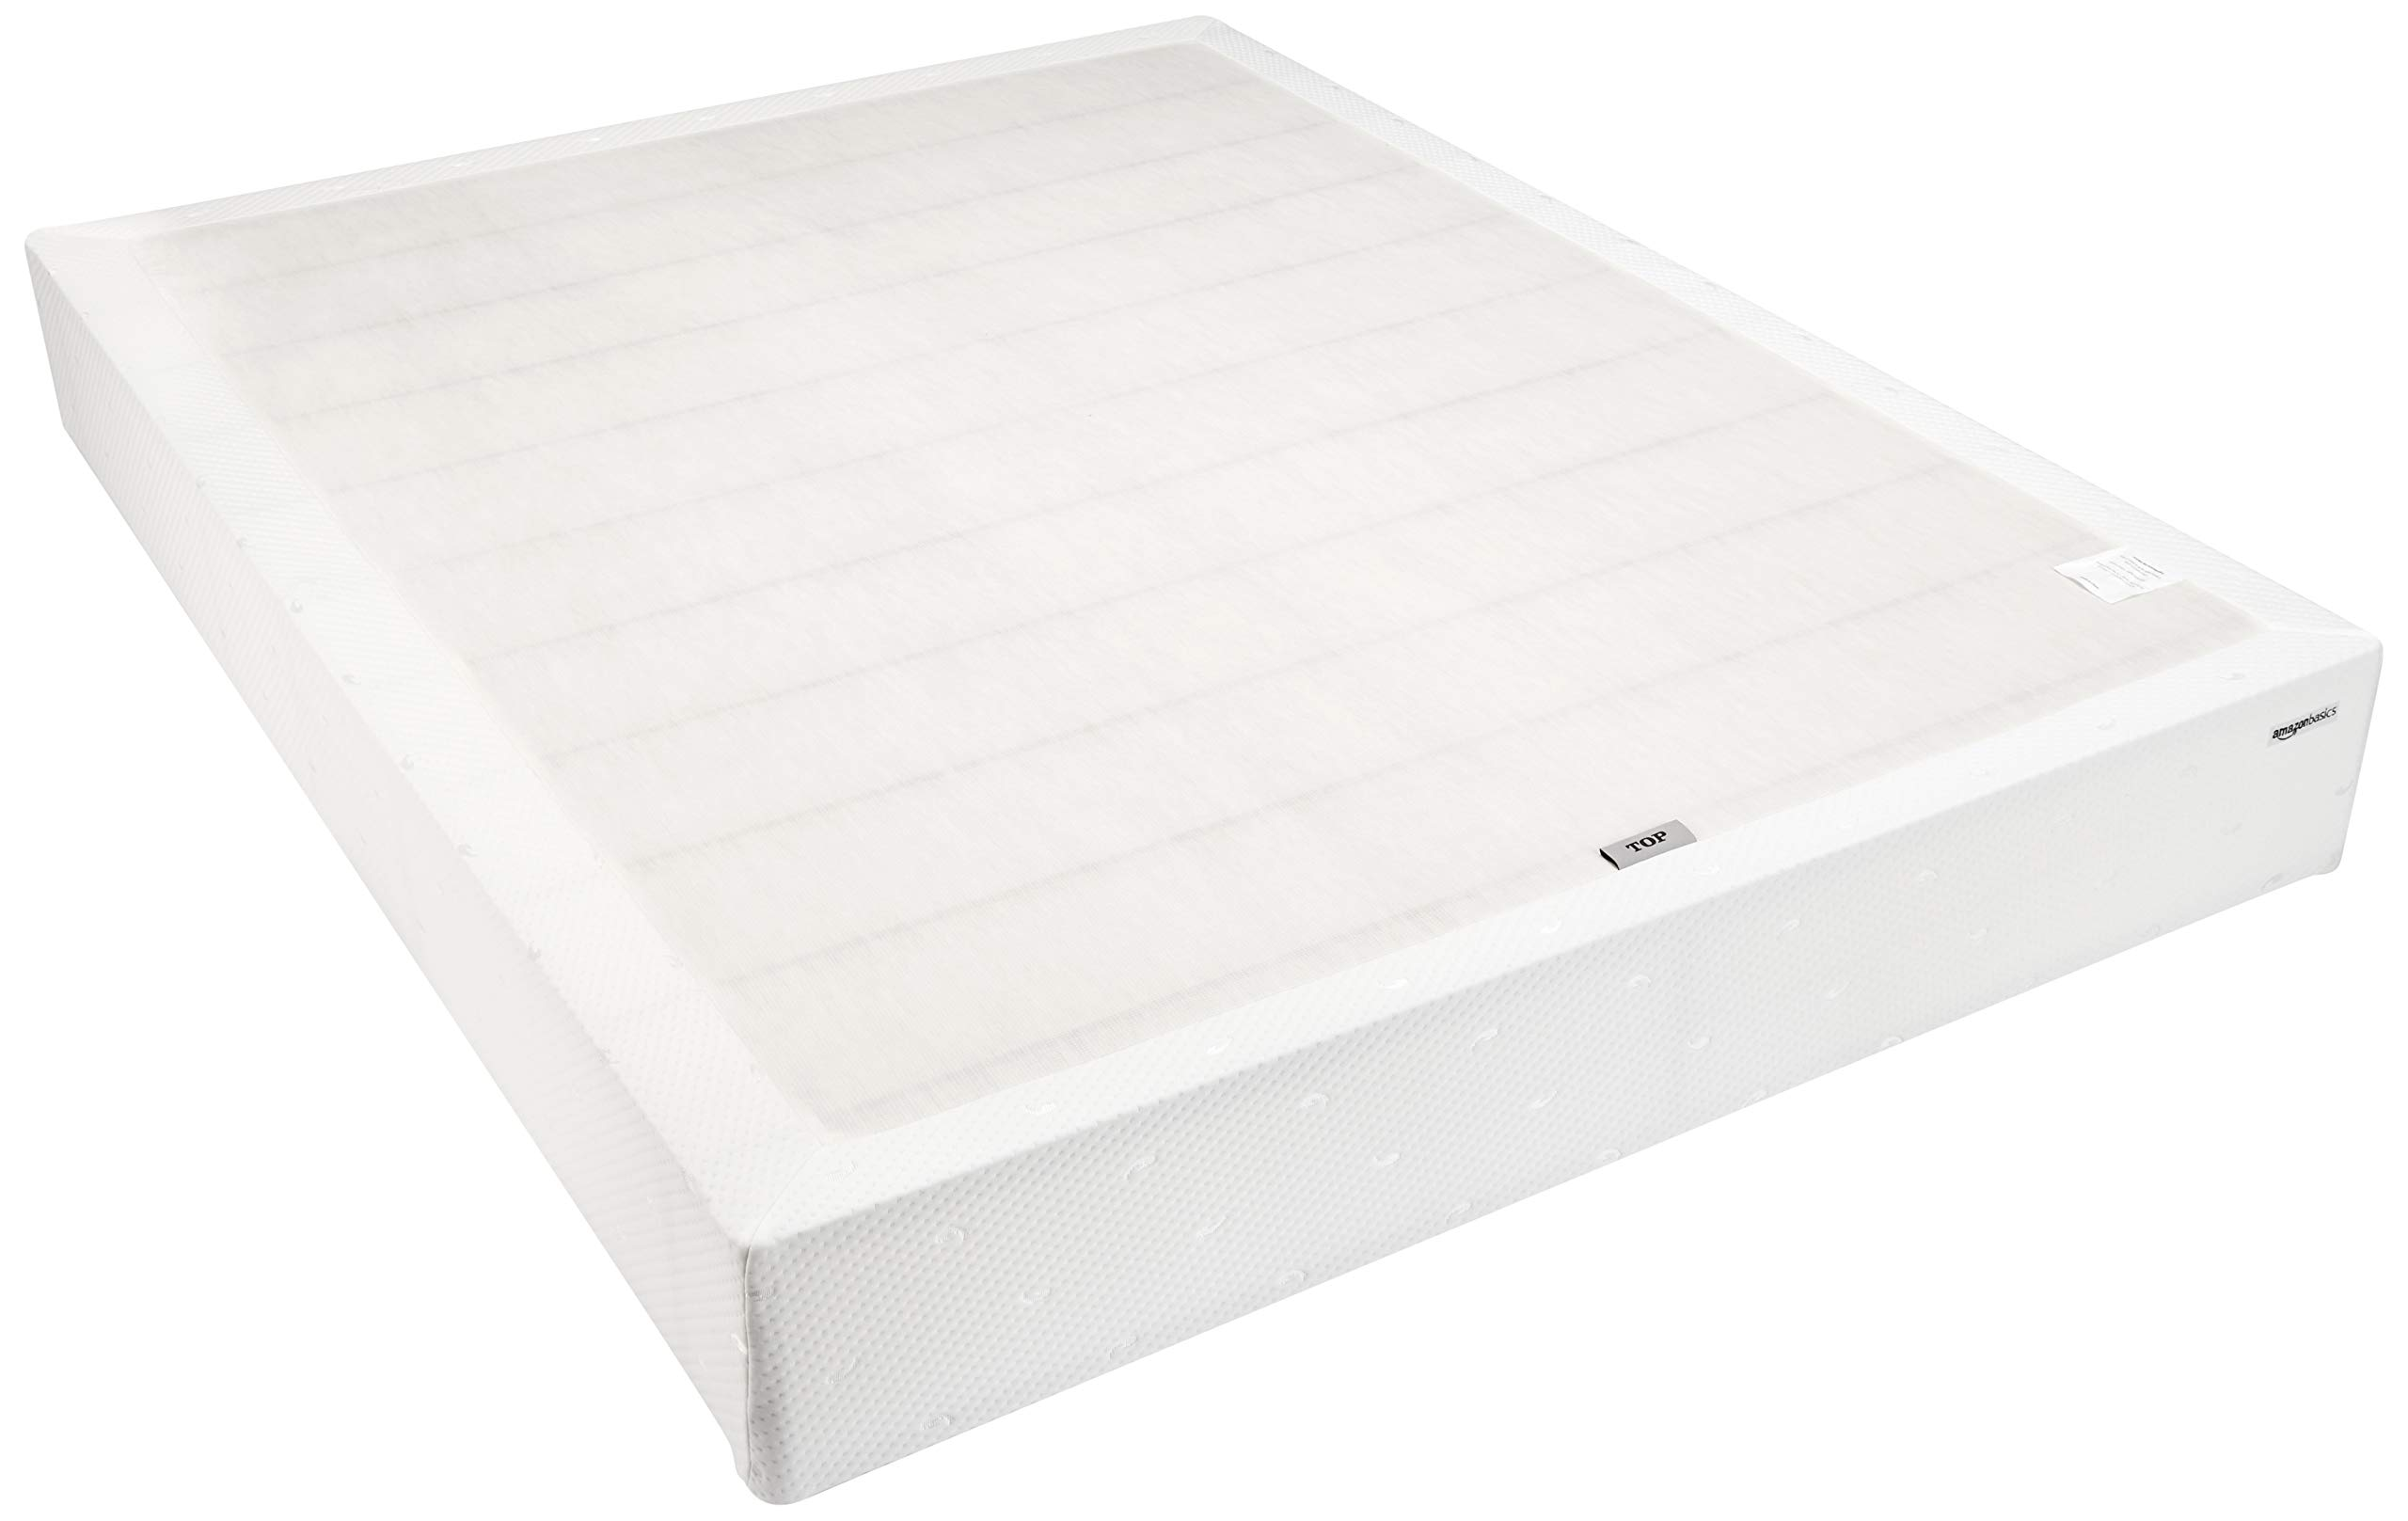 AmazonBasics Mattress Foundation / Smart Box Spring, Tool-Free Easy Assembly - 9-Inch, Cal King